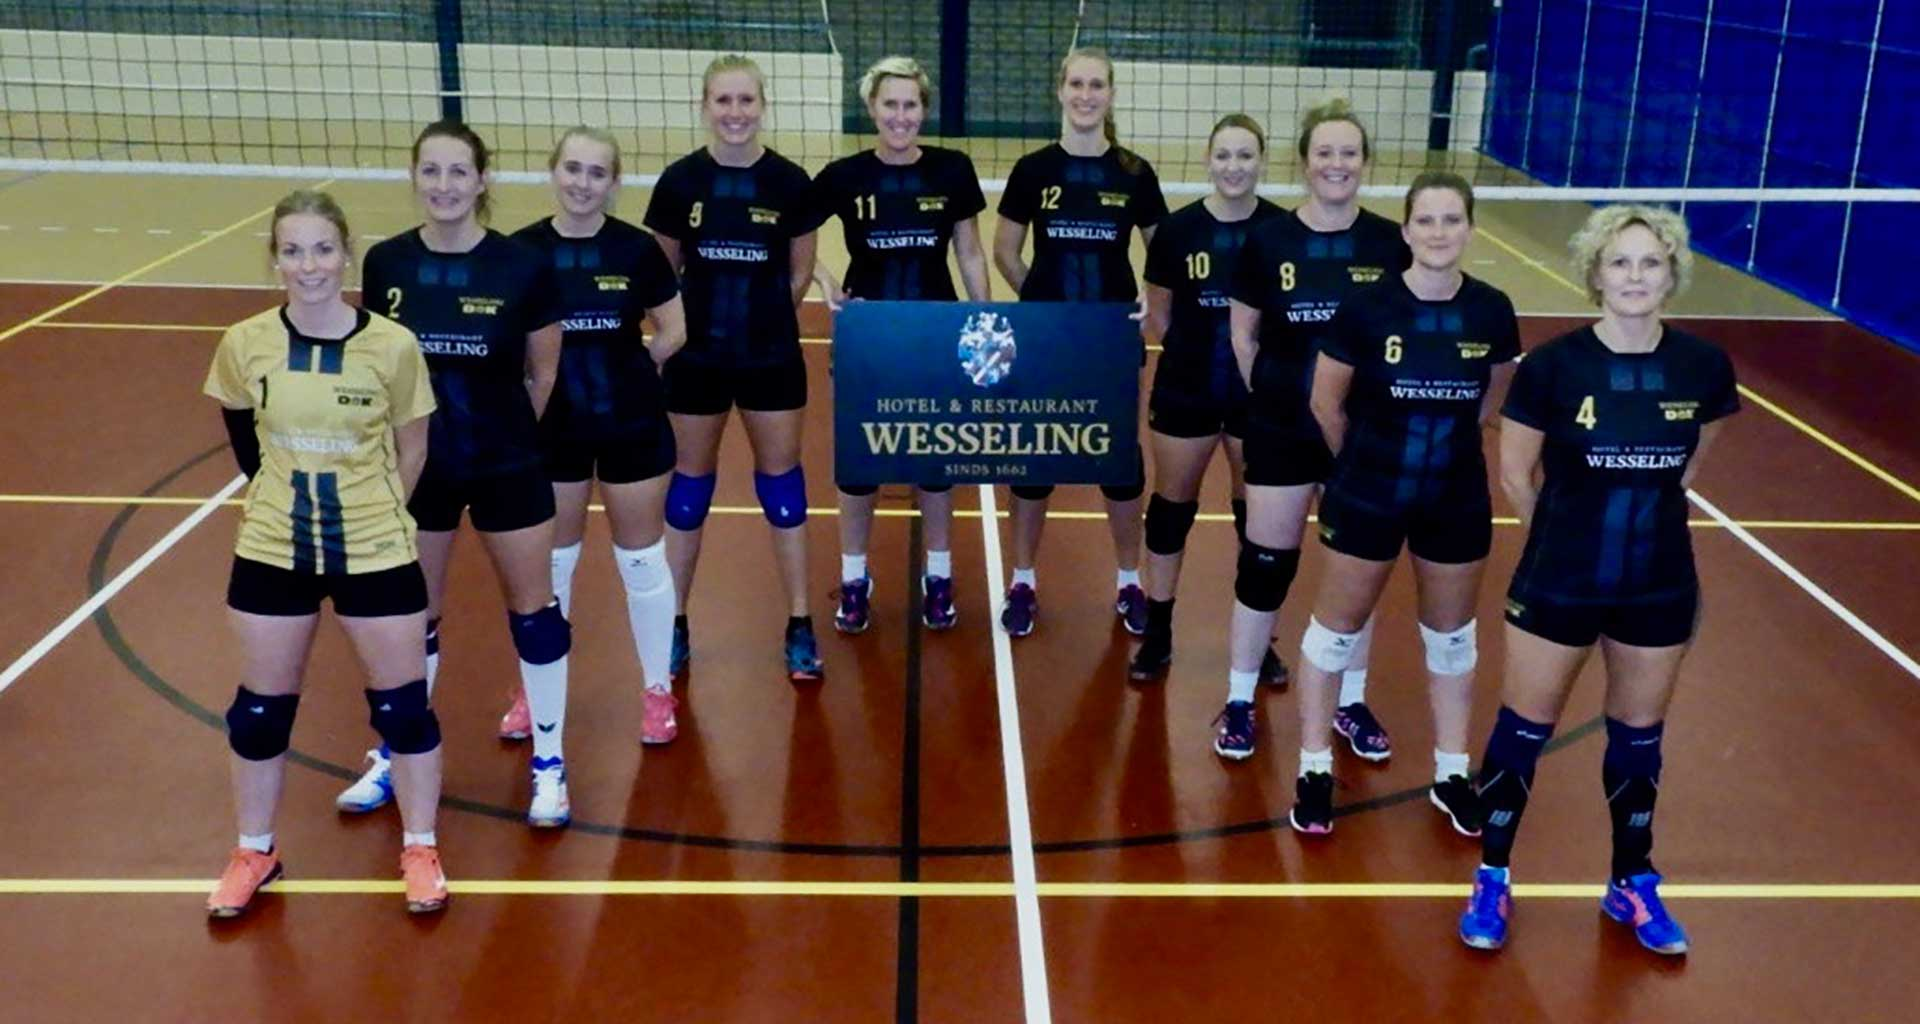 https://www.volleybal-dok.nl/wp-content/uploads/2018/12/Dames-1-klein.jpg